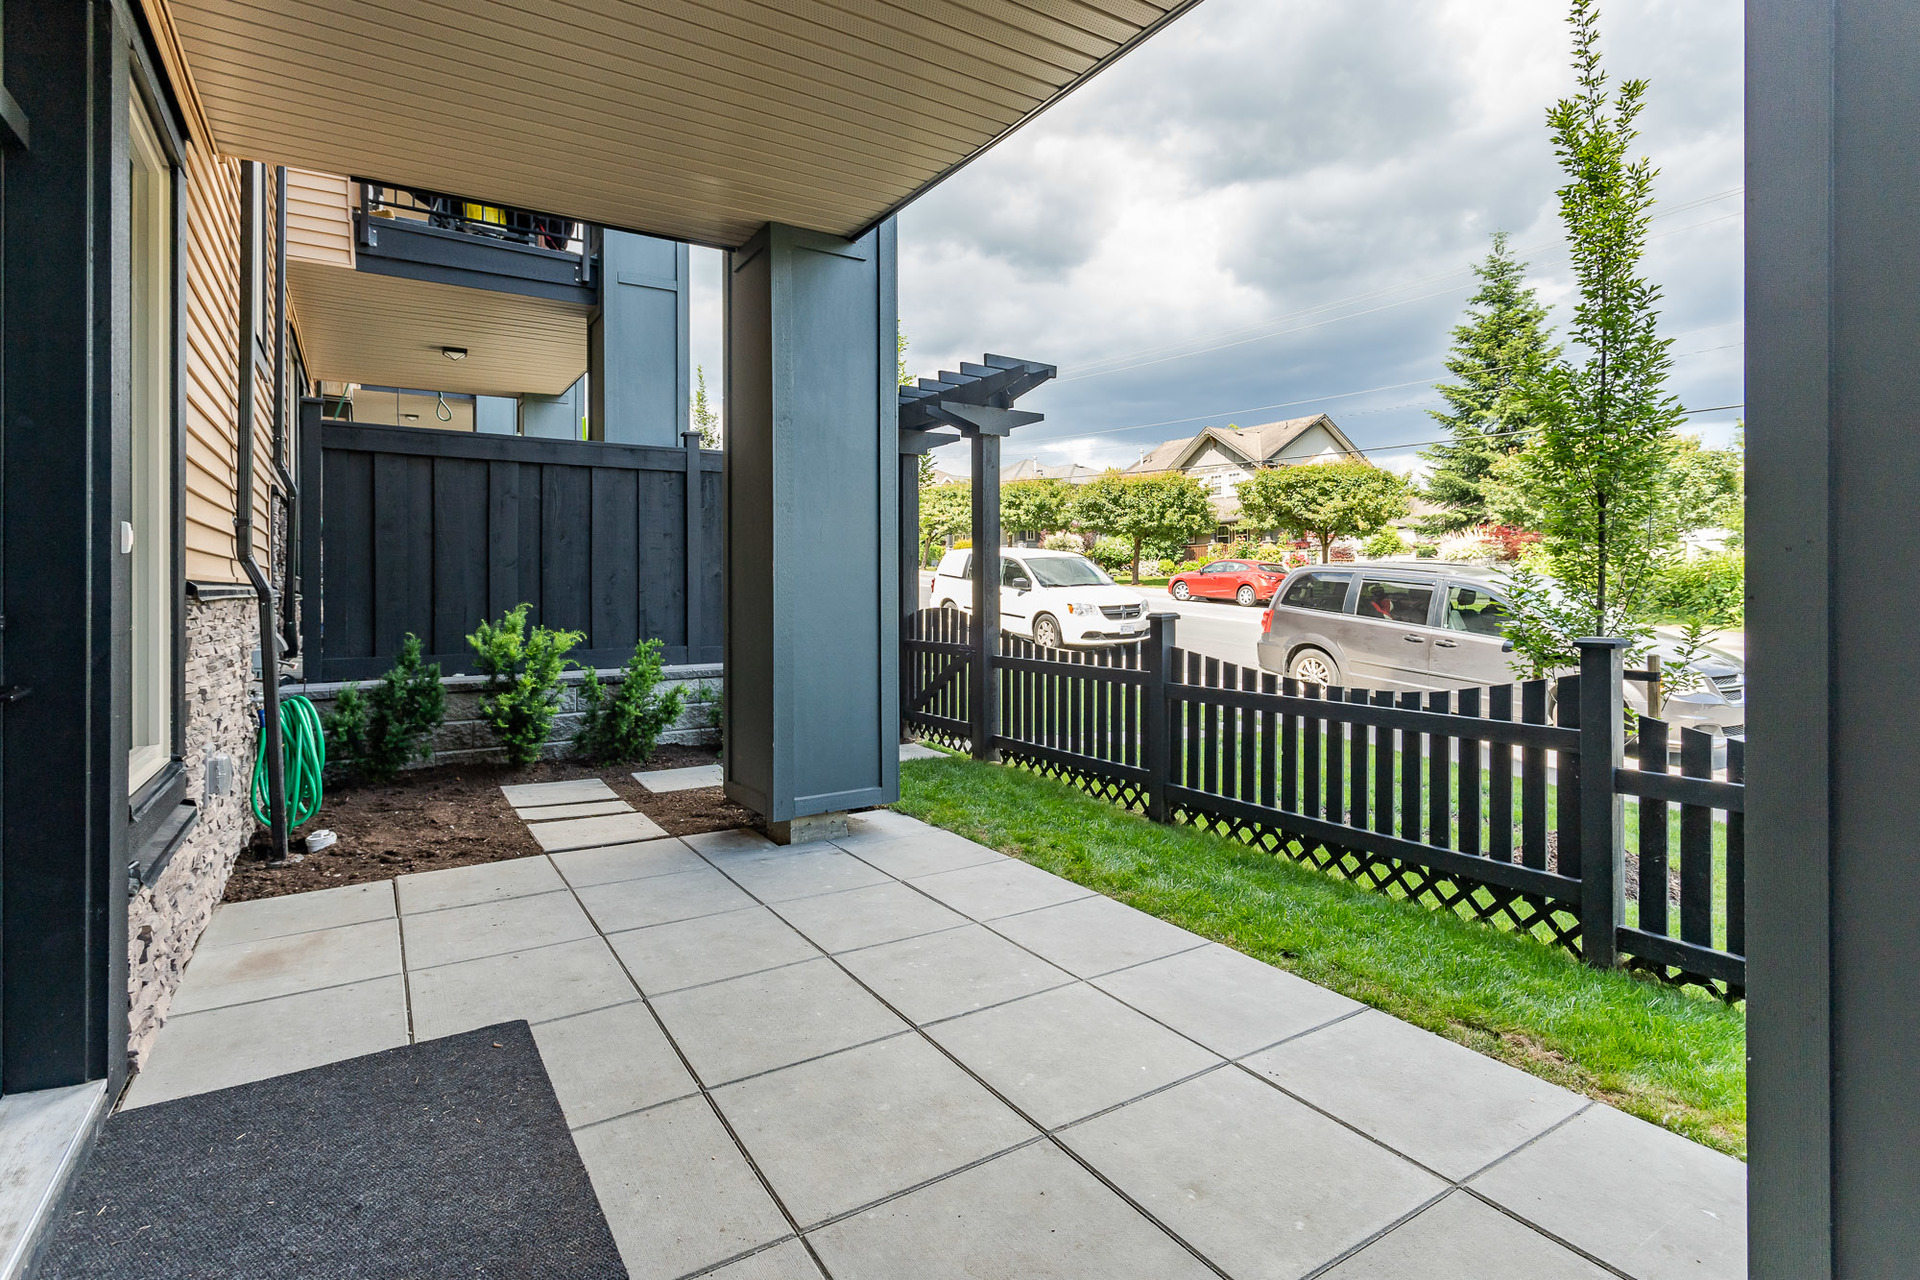 41532_46 at 38 - 10525 240 Street, Albion, Maple Ridge